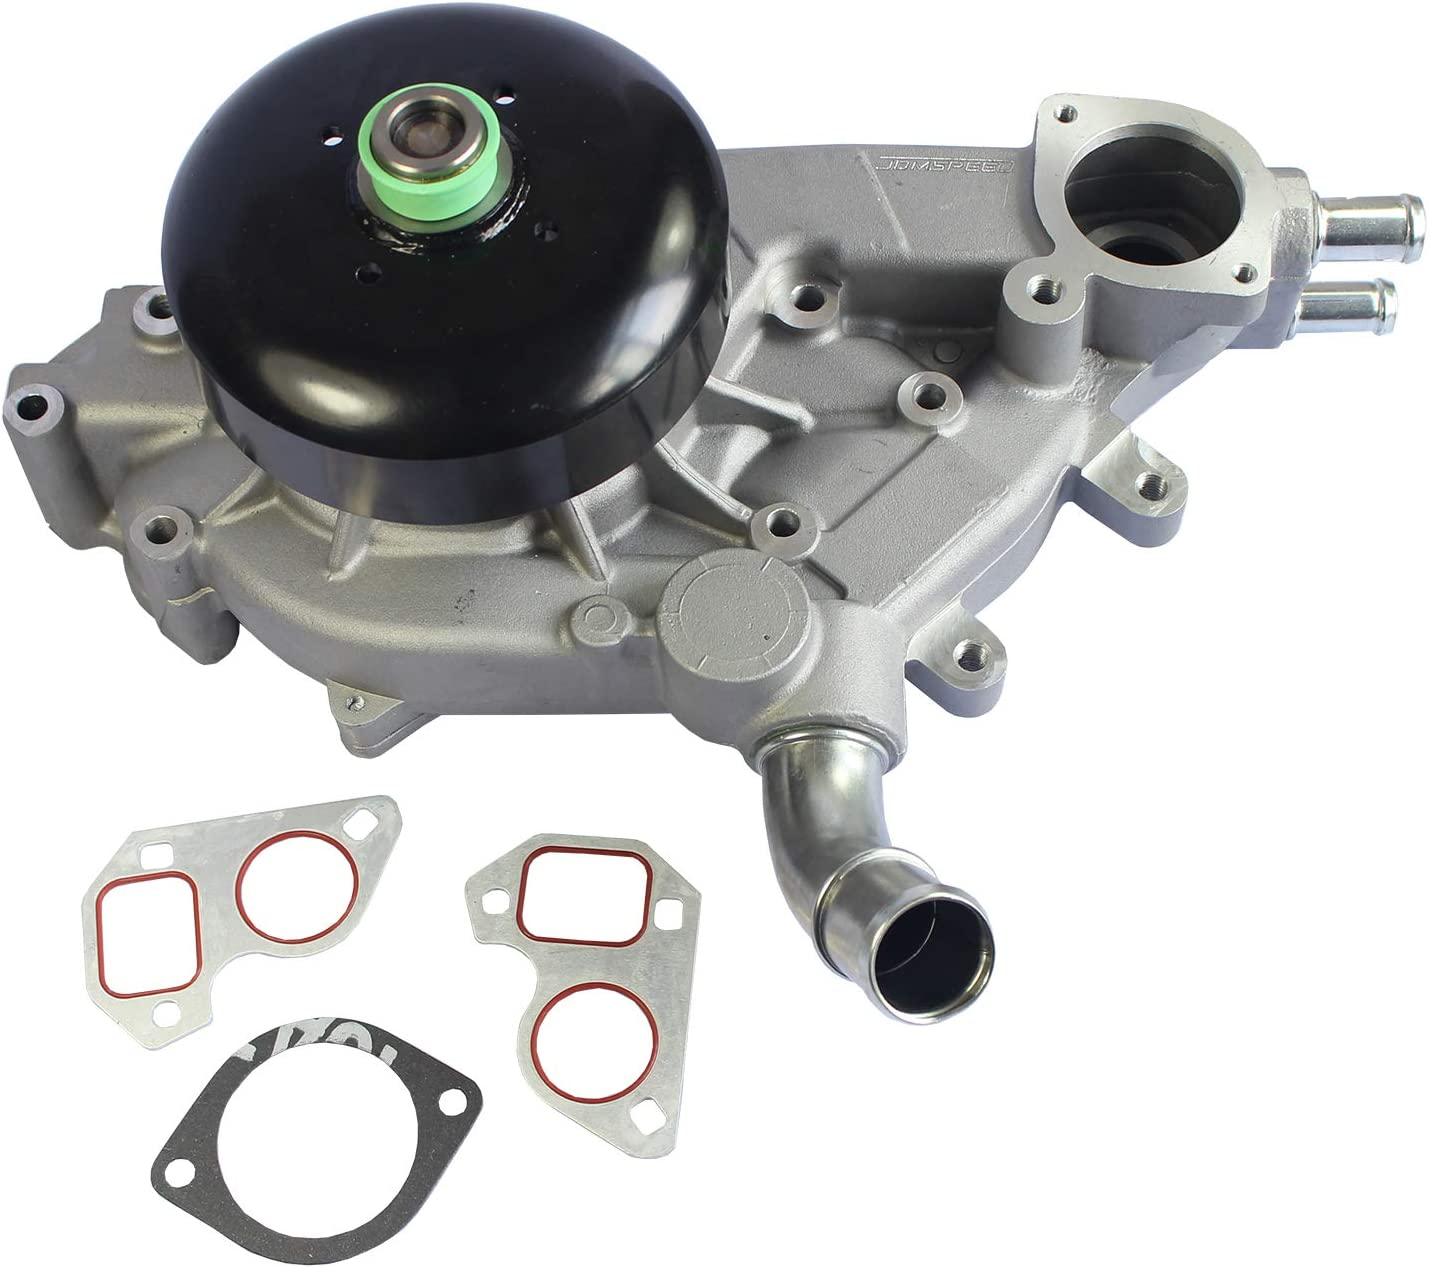 JDMSPEED New Water Pump With Gasket Replacement For Chevrolet GMC Tahoe Yukon 4.8 5.3 6.0 L Vortec